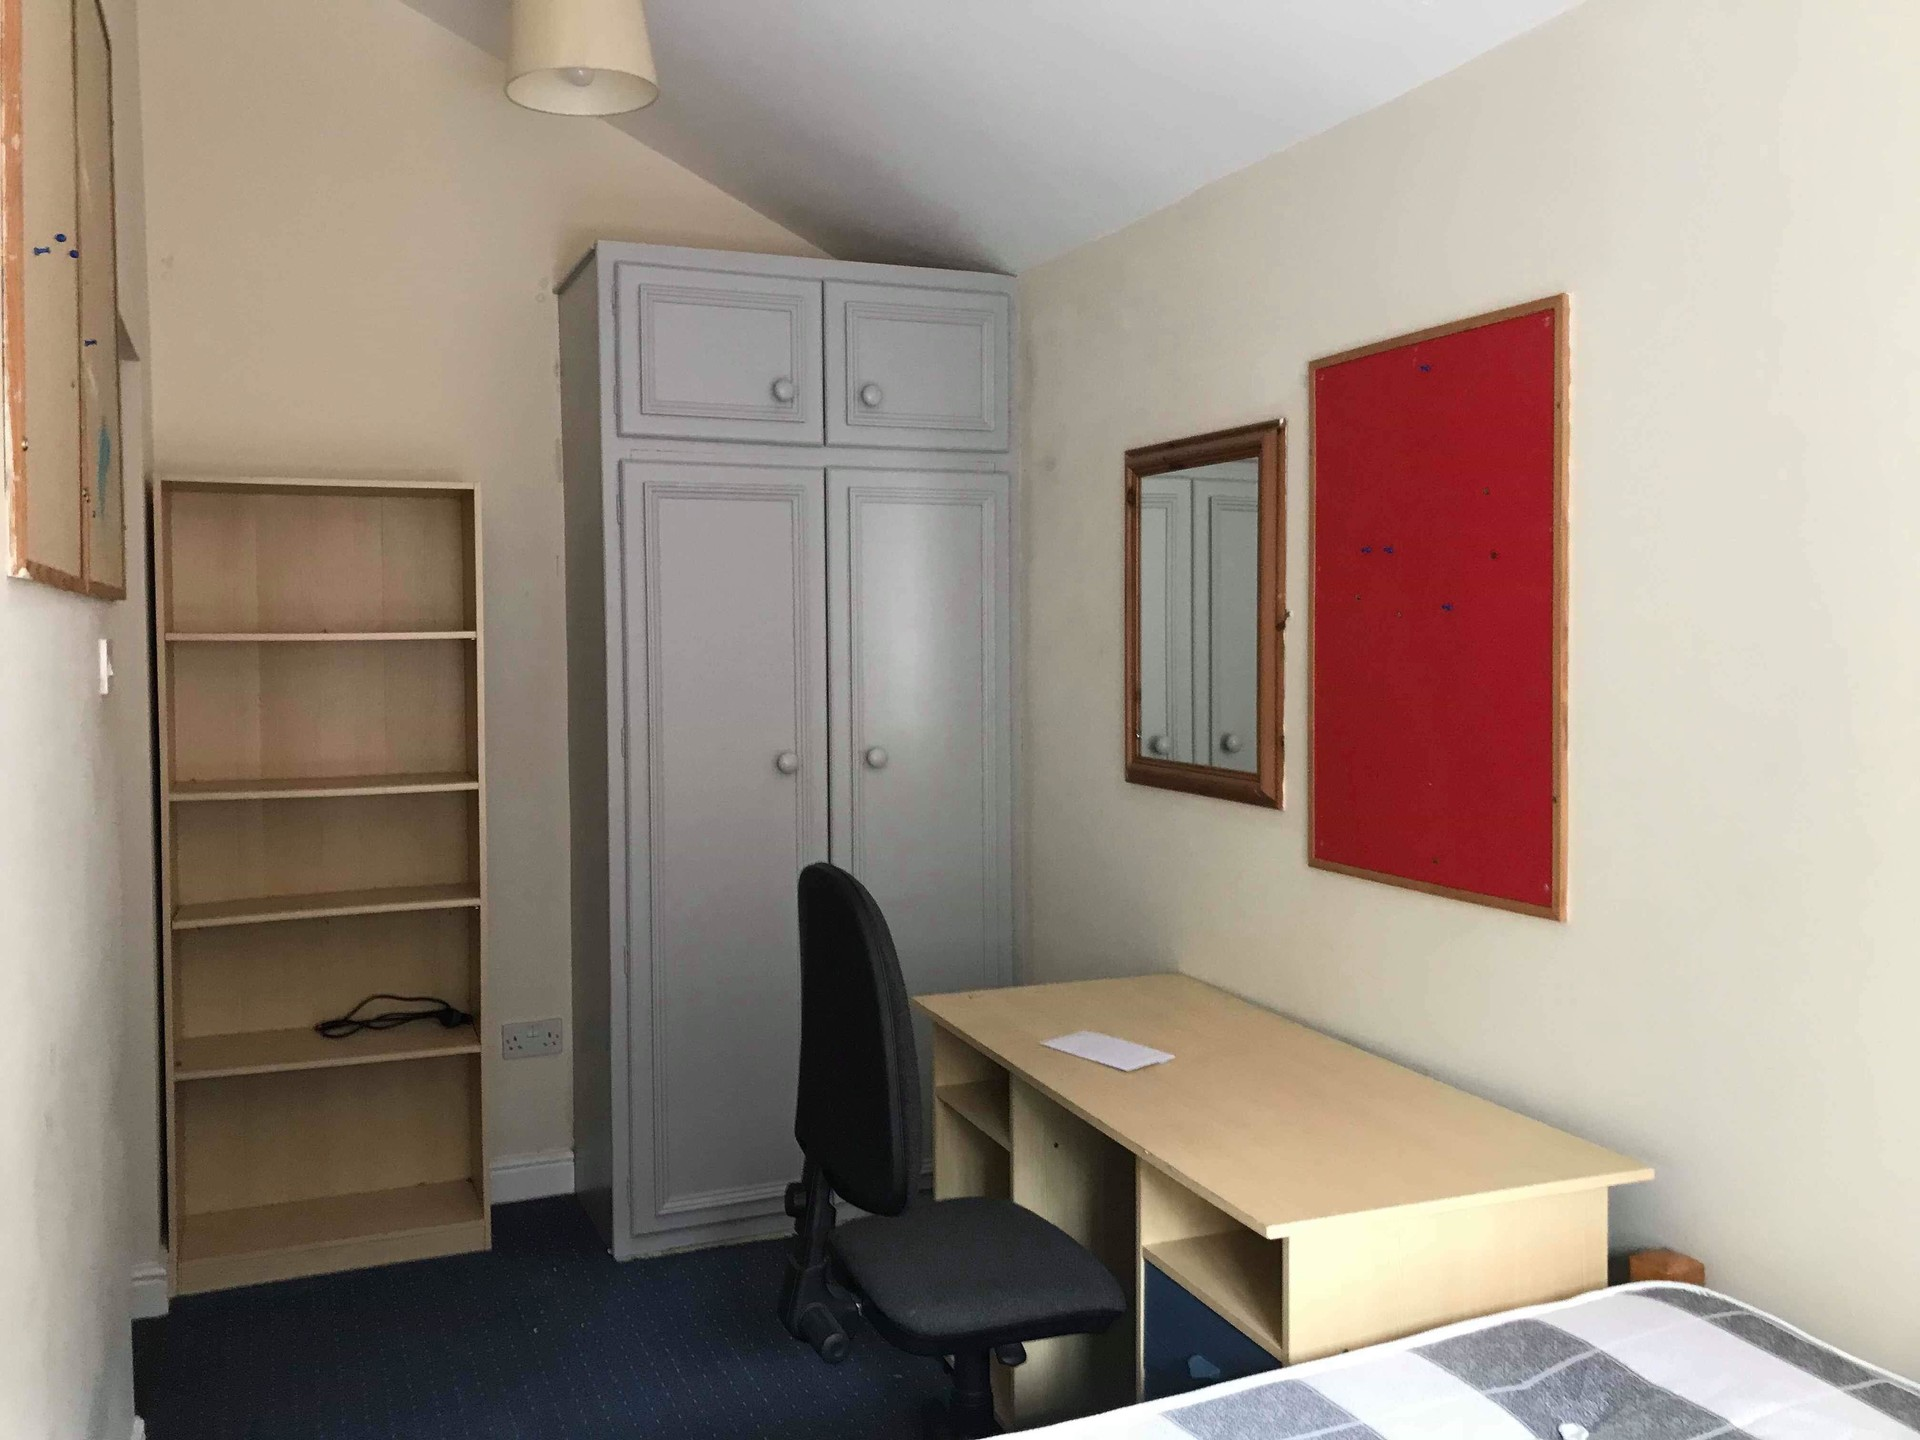 Lovely room in Sheffield, UK, for semester 2. Rent is £88 per week